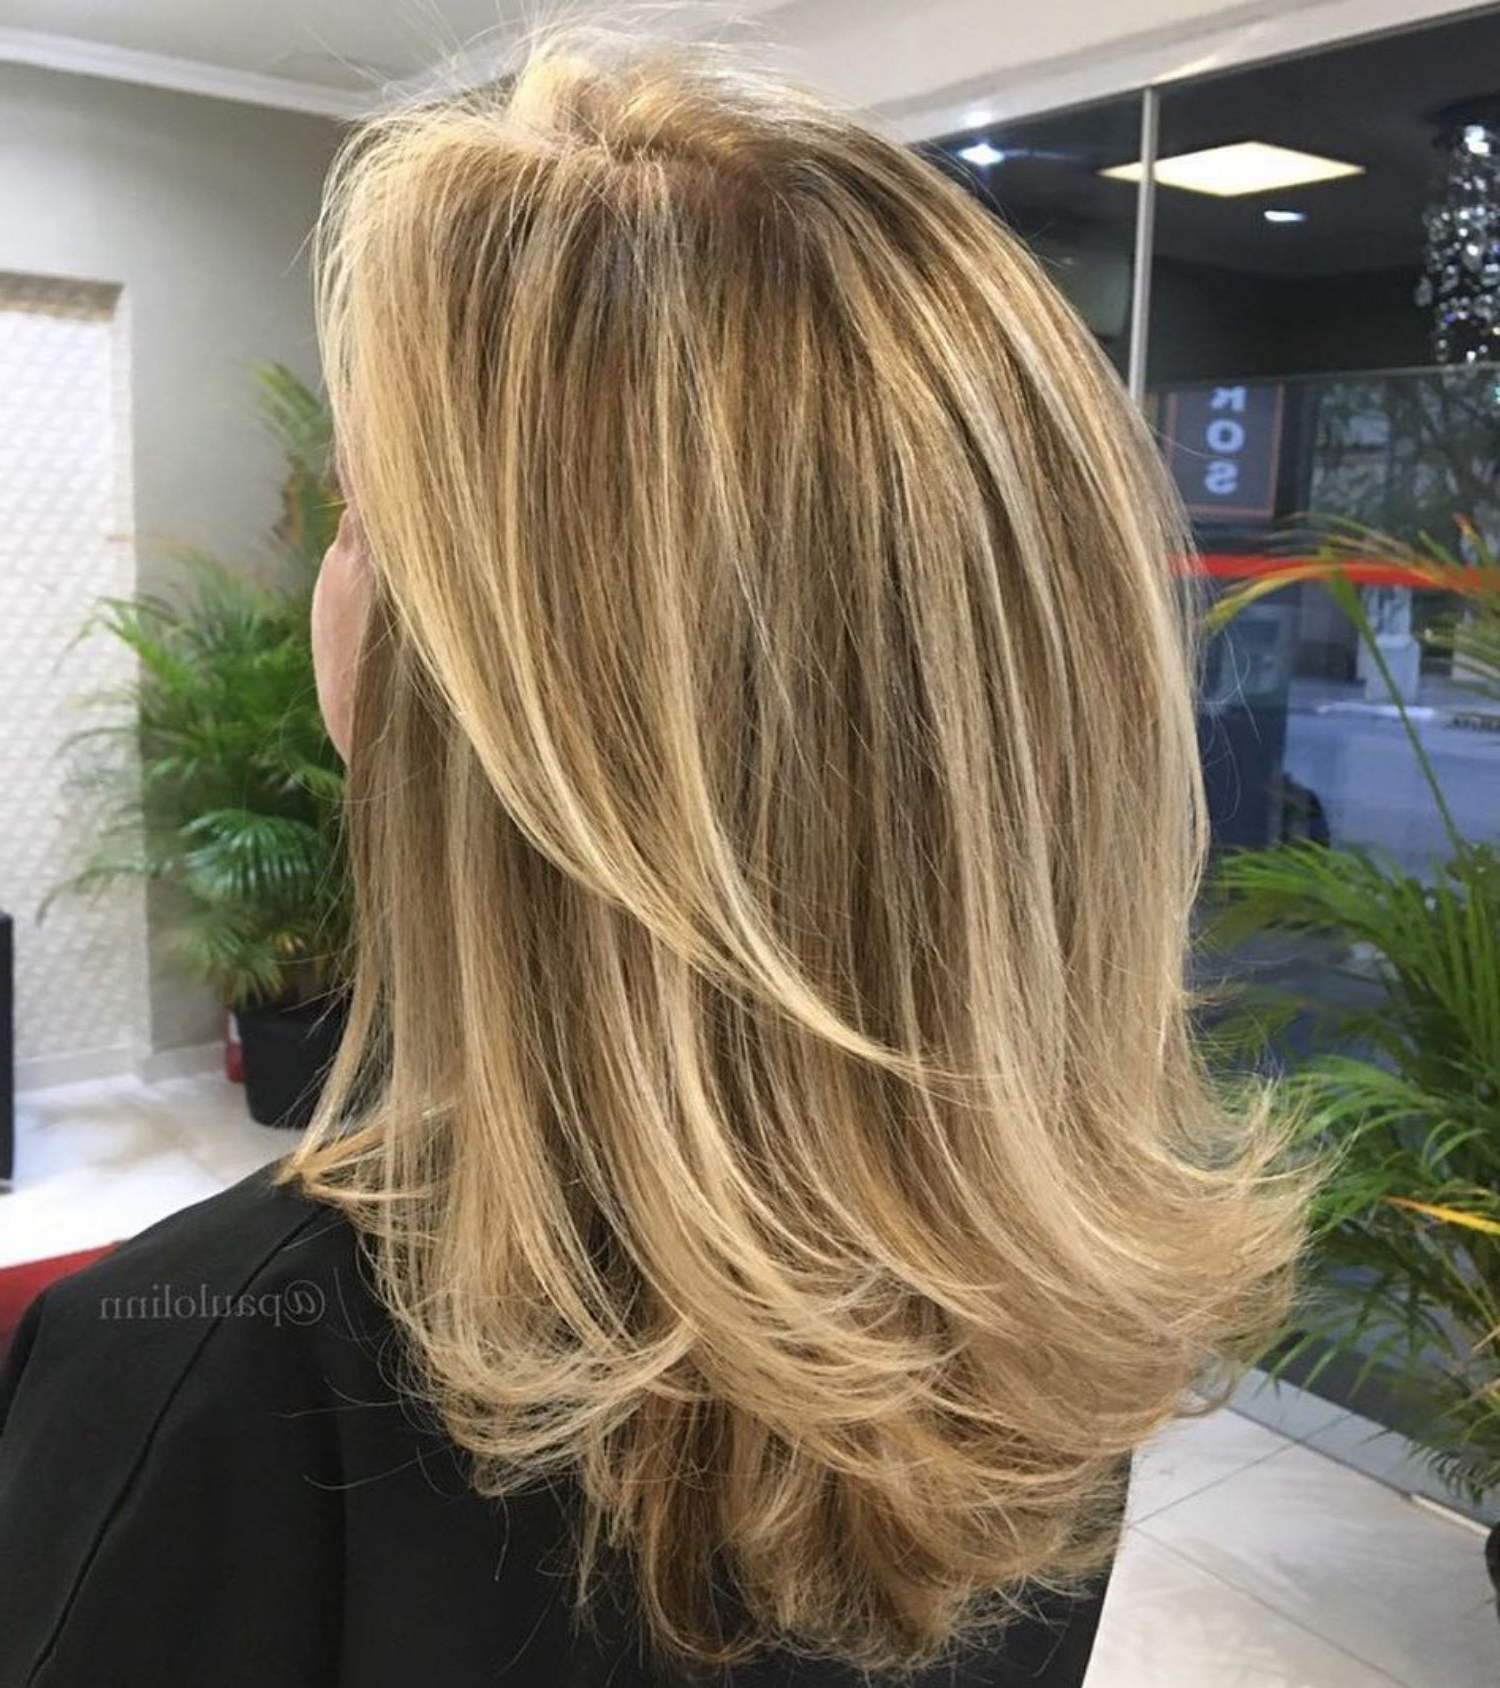 Famous Shoulder Length Haircuts With Flicked Ends In 60 Fun And Flattering Medium Hairstyles For Women (View 10 of 20)